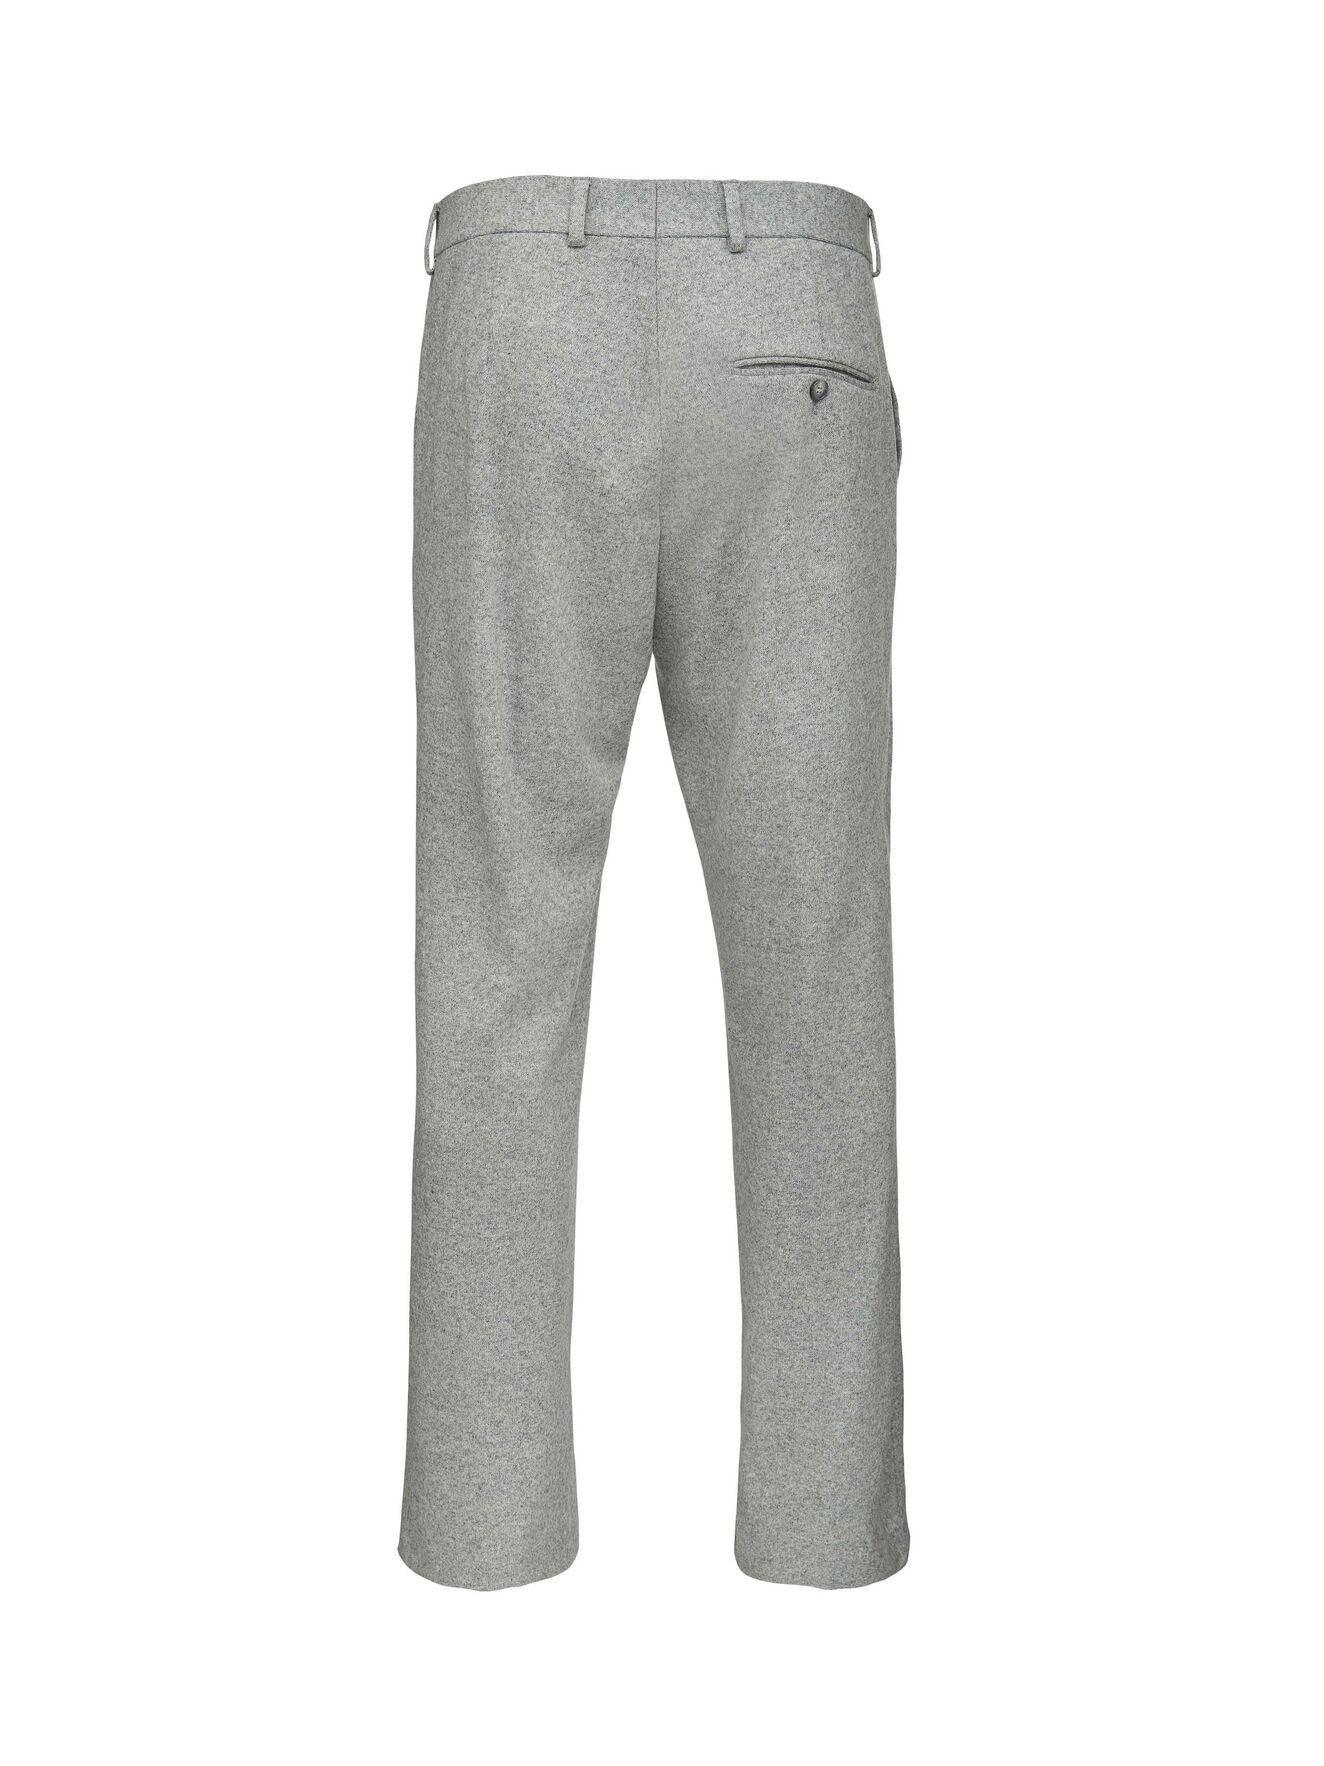 MELKER TROUSERS in Monument from Tiger of Sweden